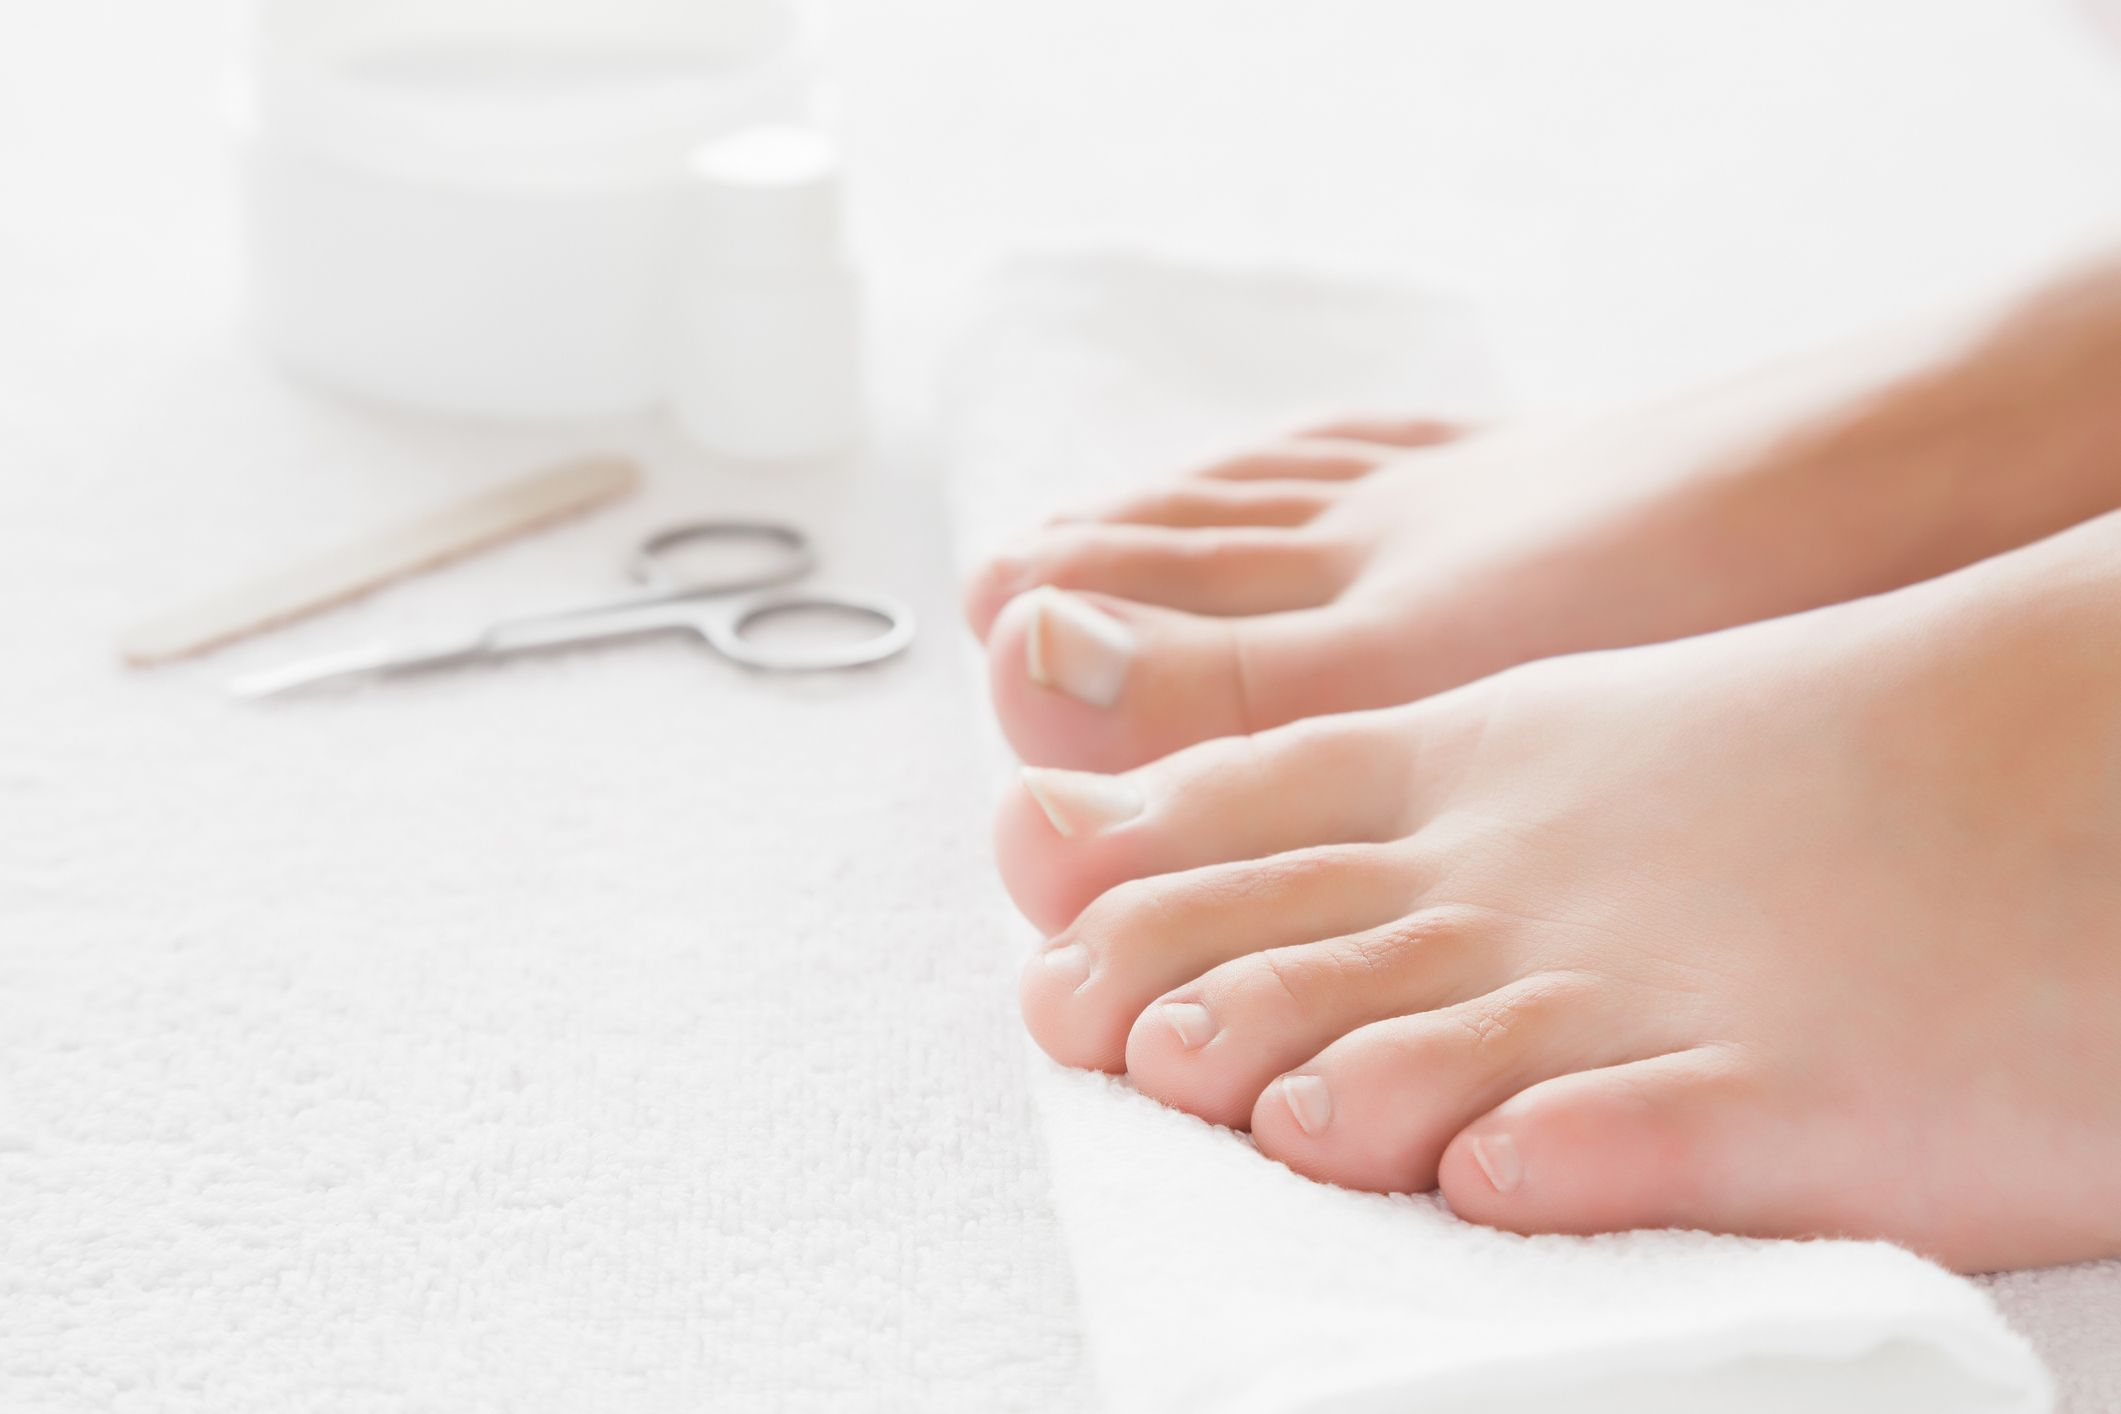 Fungal nail infection treatment tips